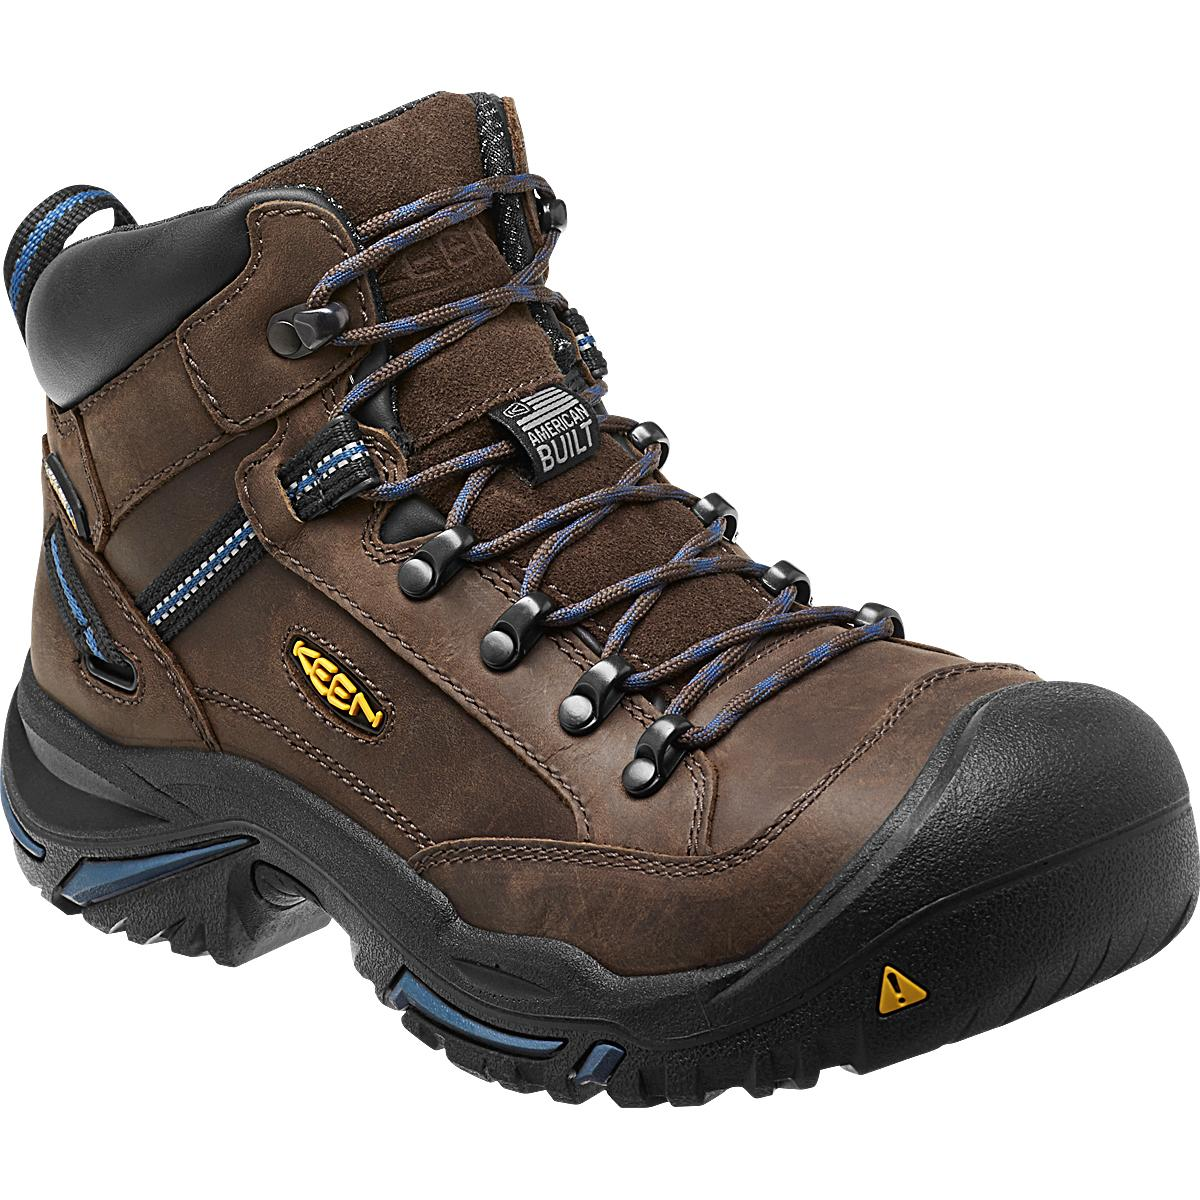 Black Keen Safety Shoes